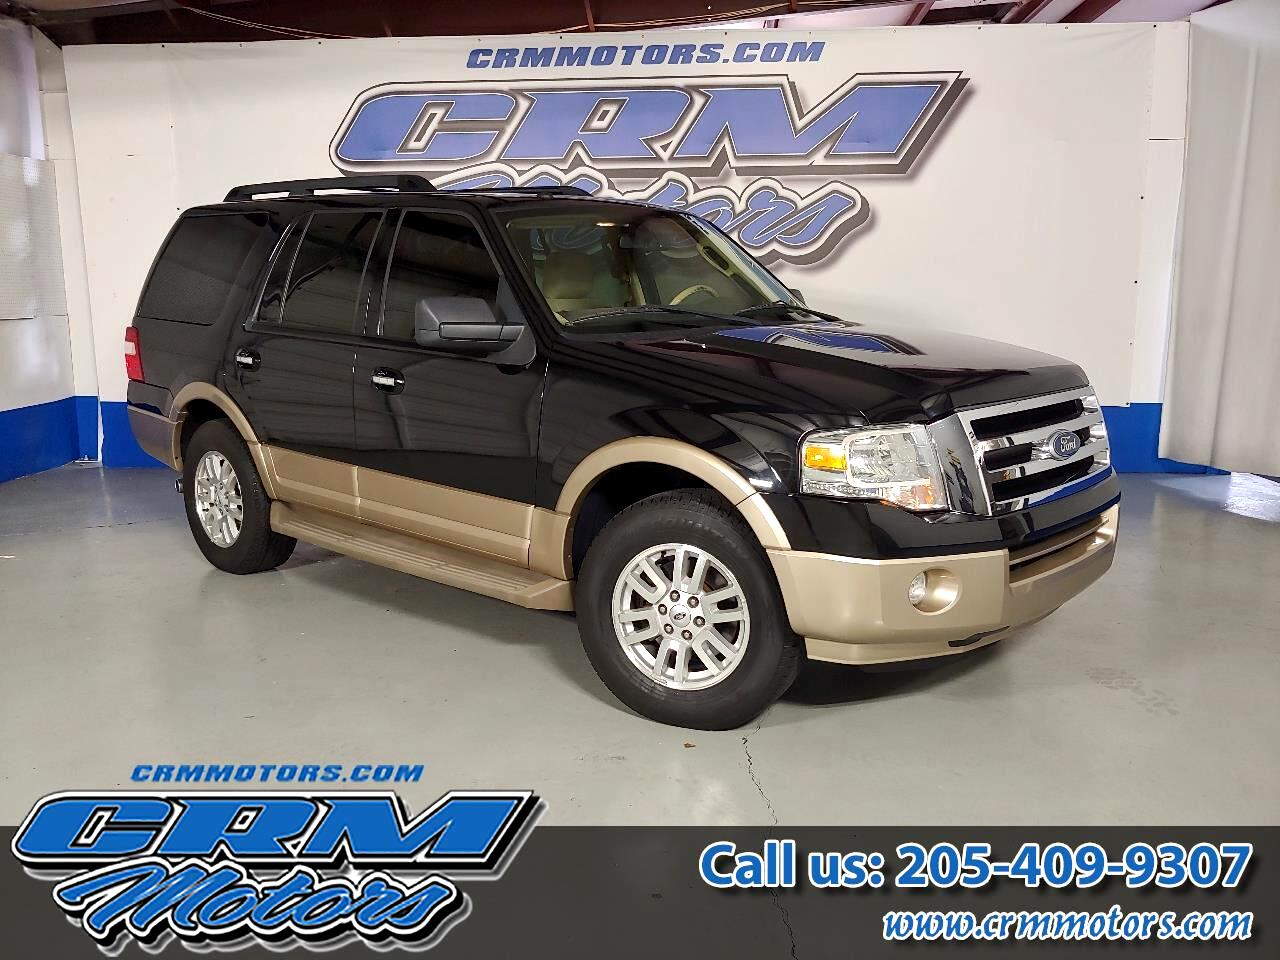 2011 Ford Expedition 2WD, XLT, LEATHER, VERY CLEAN VEHICLE! LOW PAYMENT